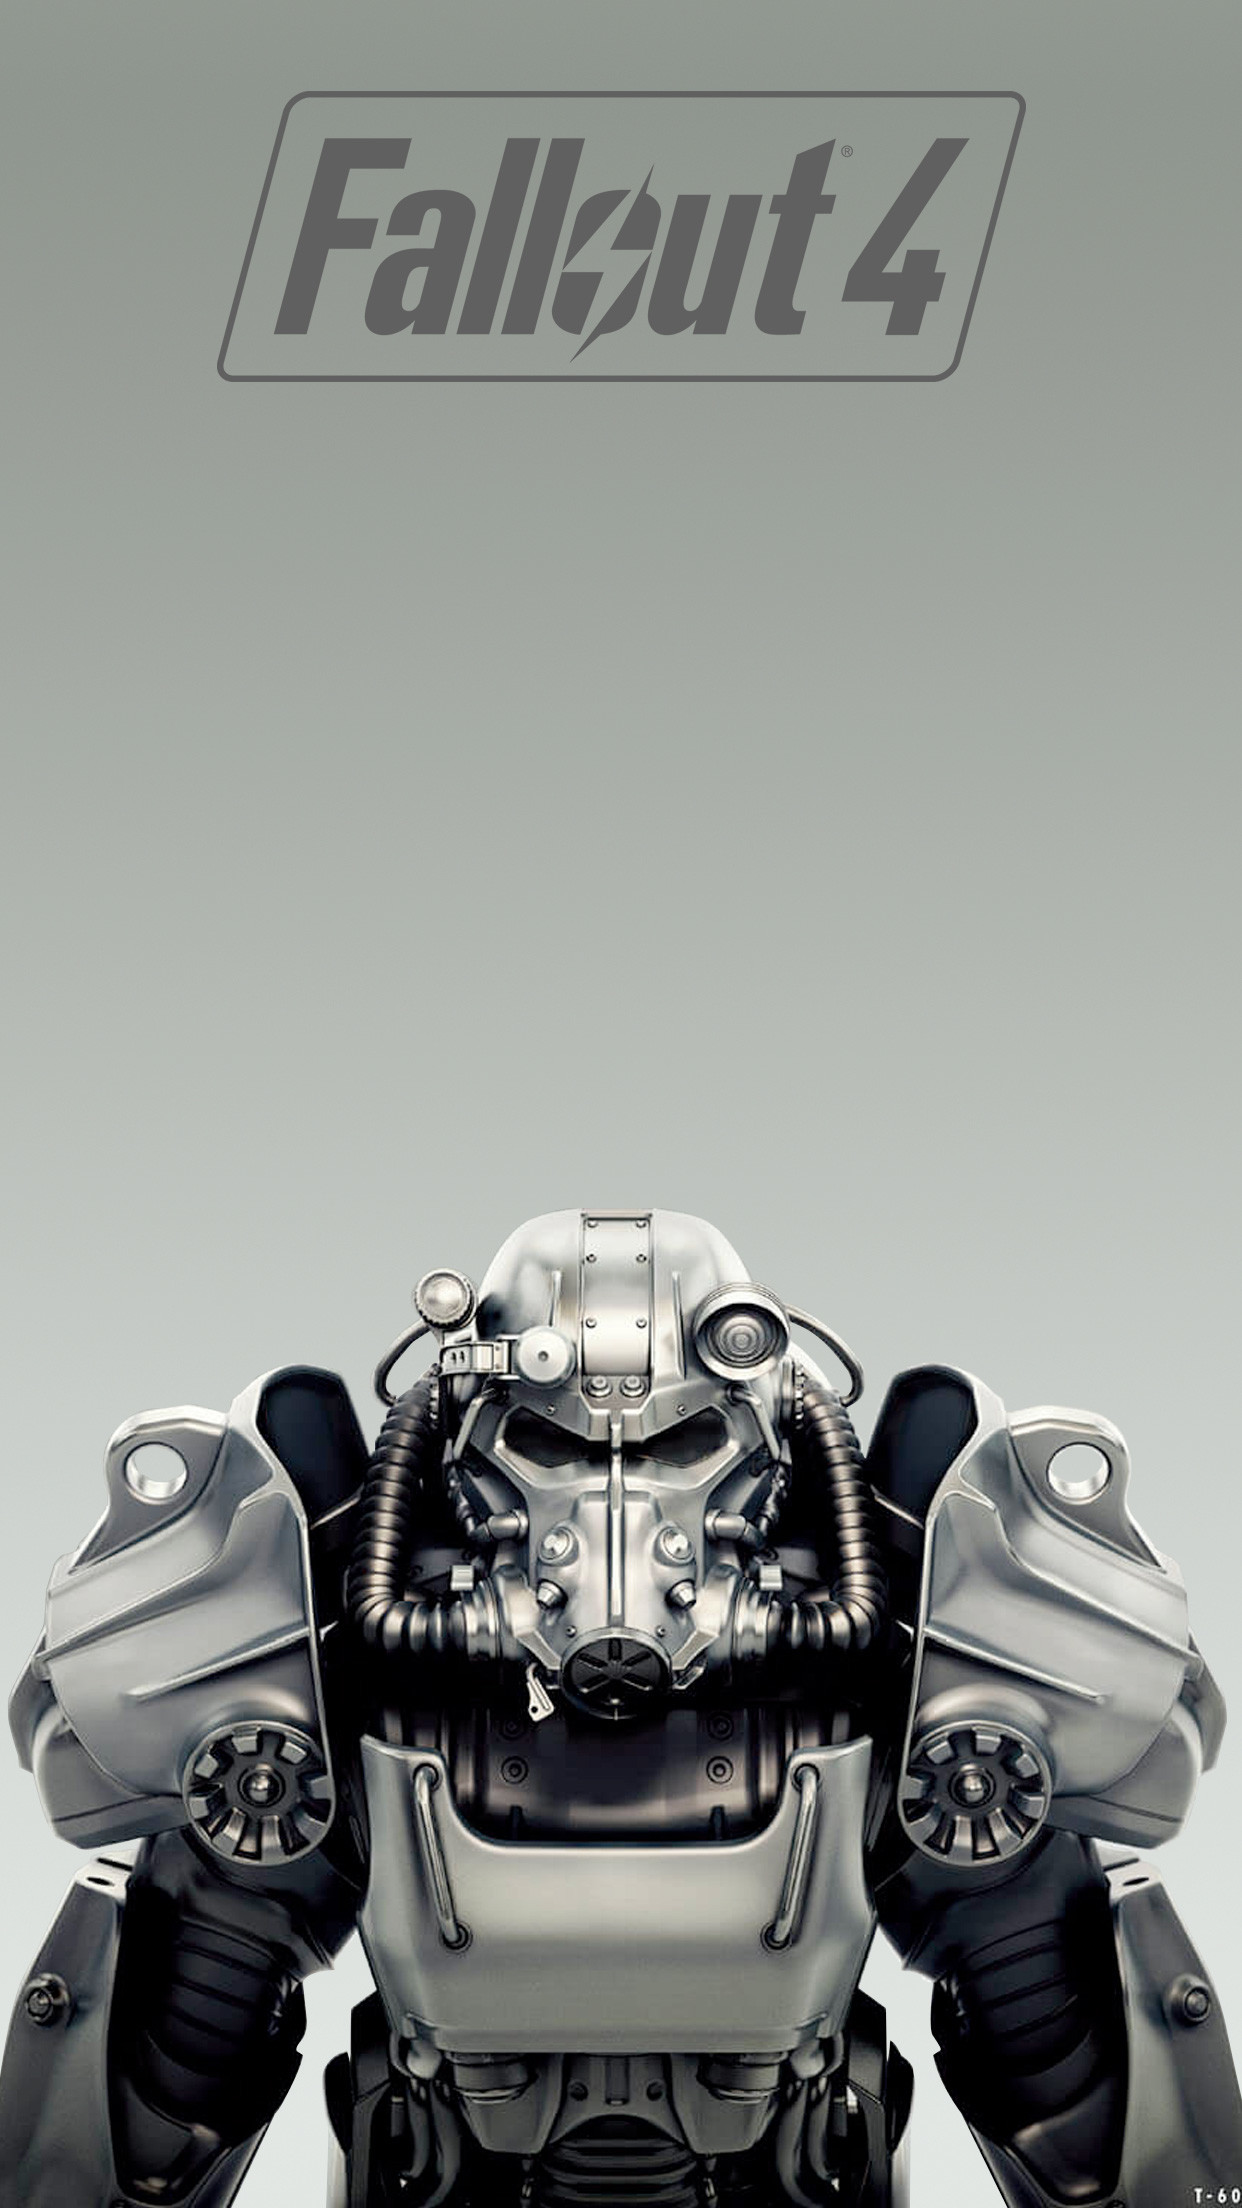 Fallout 4 Power Armor Mobile Wallpapers for your Phone